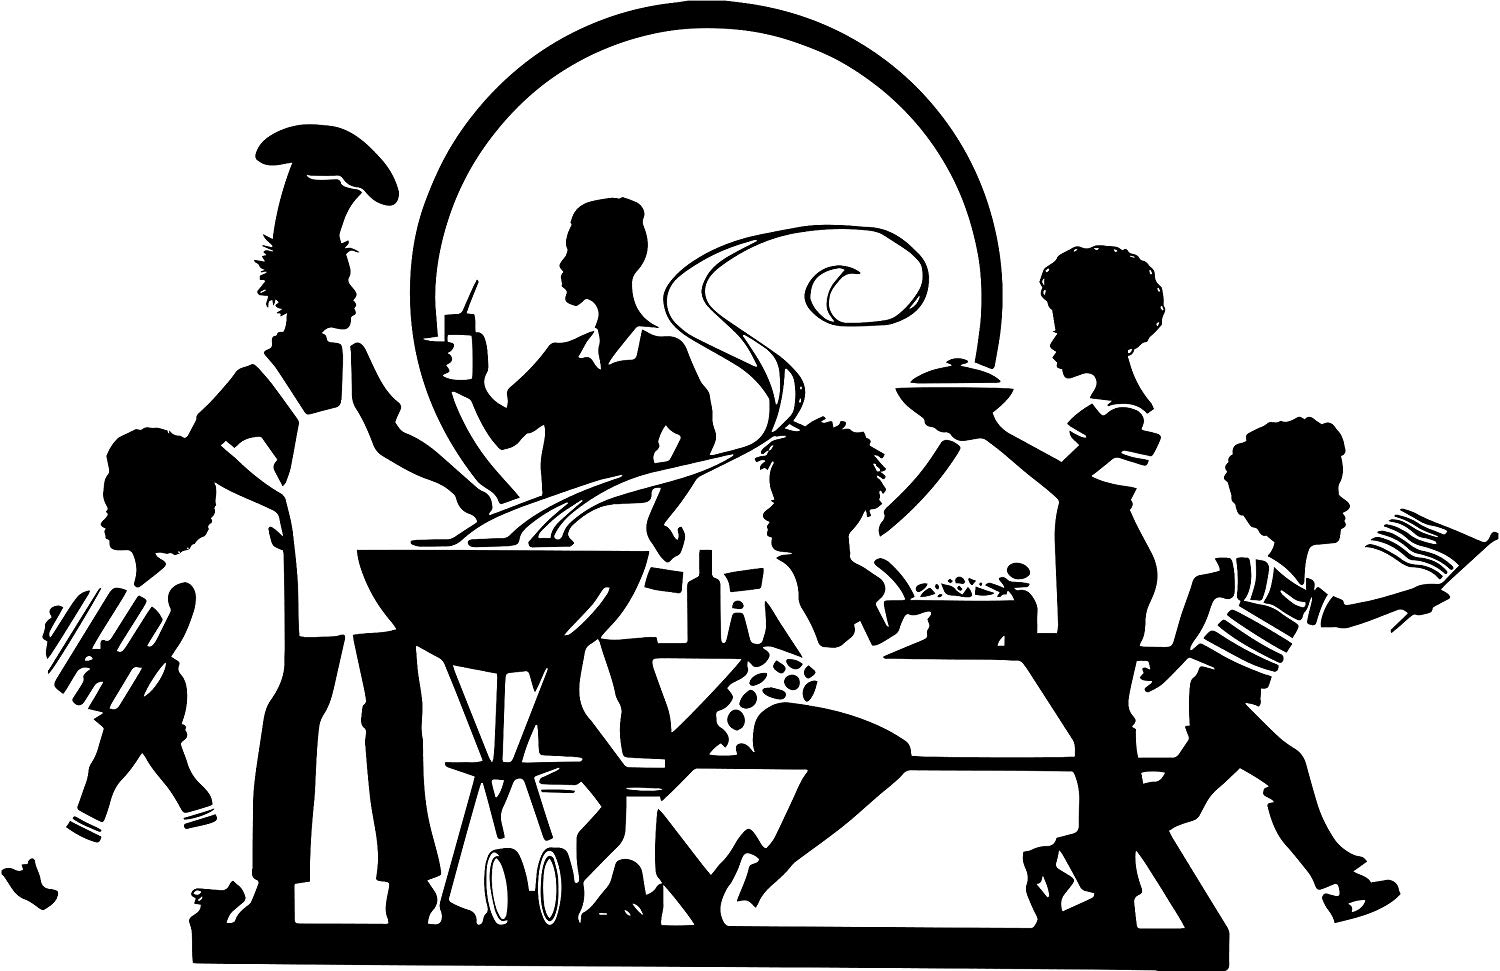 Clipart of people with disabilities having a picnic banner black and white download Amazon.com: EvelynDavid Black Family Picnic Barbecue Having Fun Afro ... banner black and white download